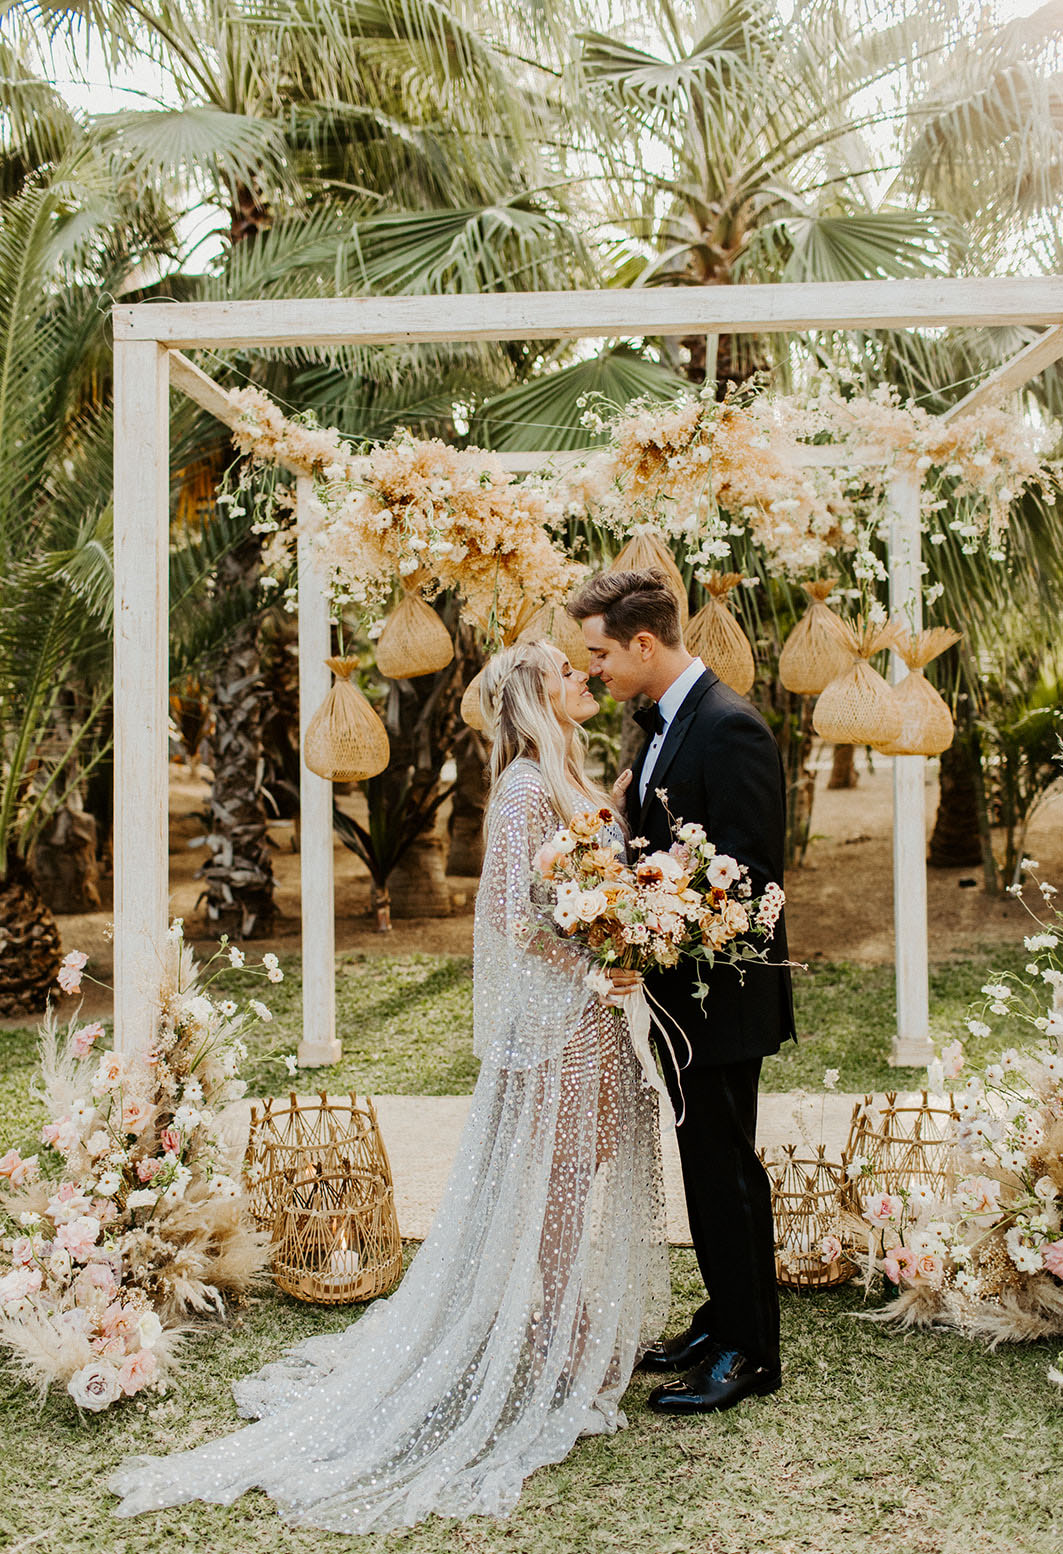 The wedding ceremony space was done with an arch decorated with neutral and white blooms, some lanterns hanging and floor ones, pampas grass and blush blooms